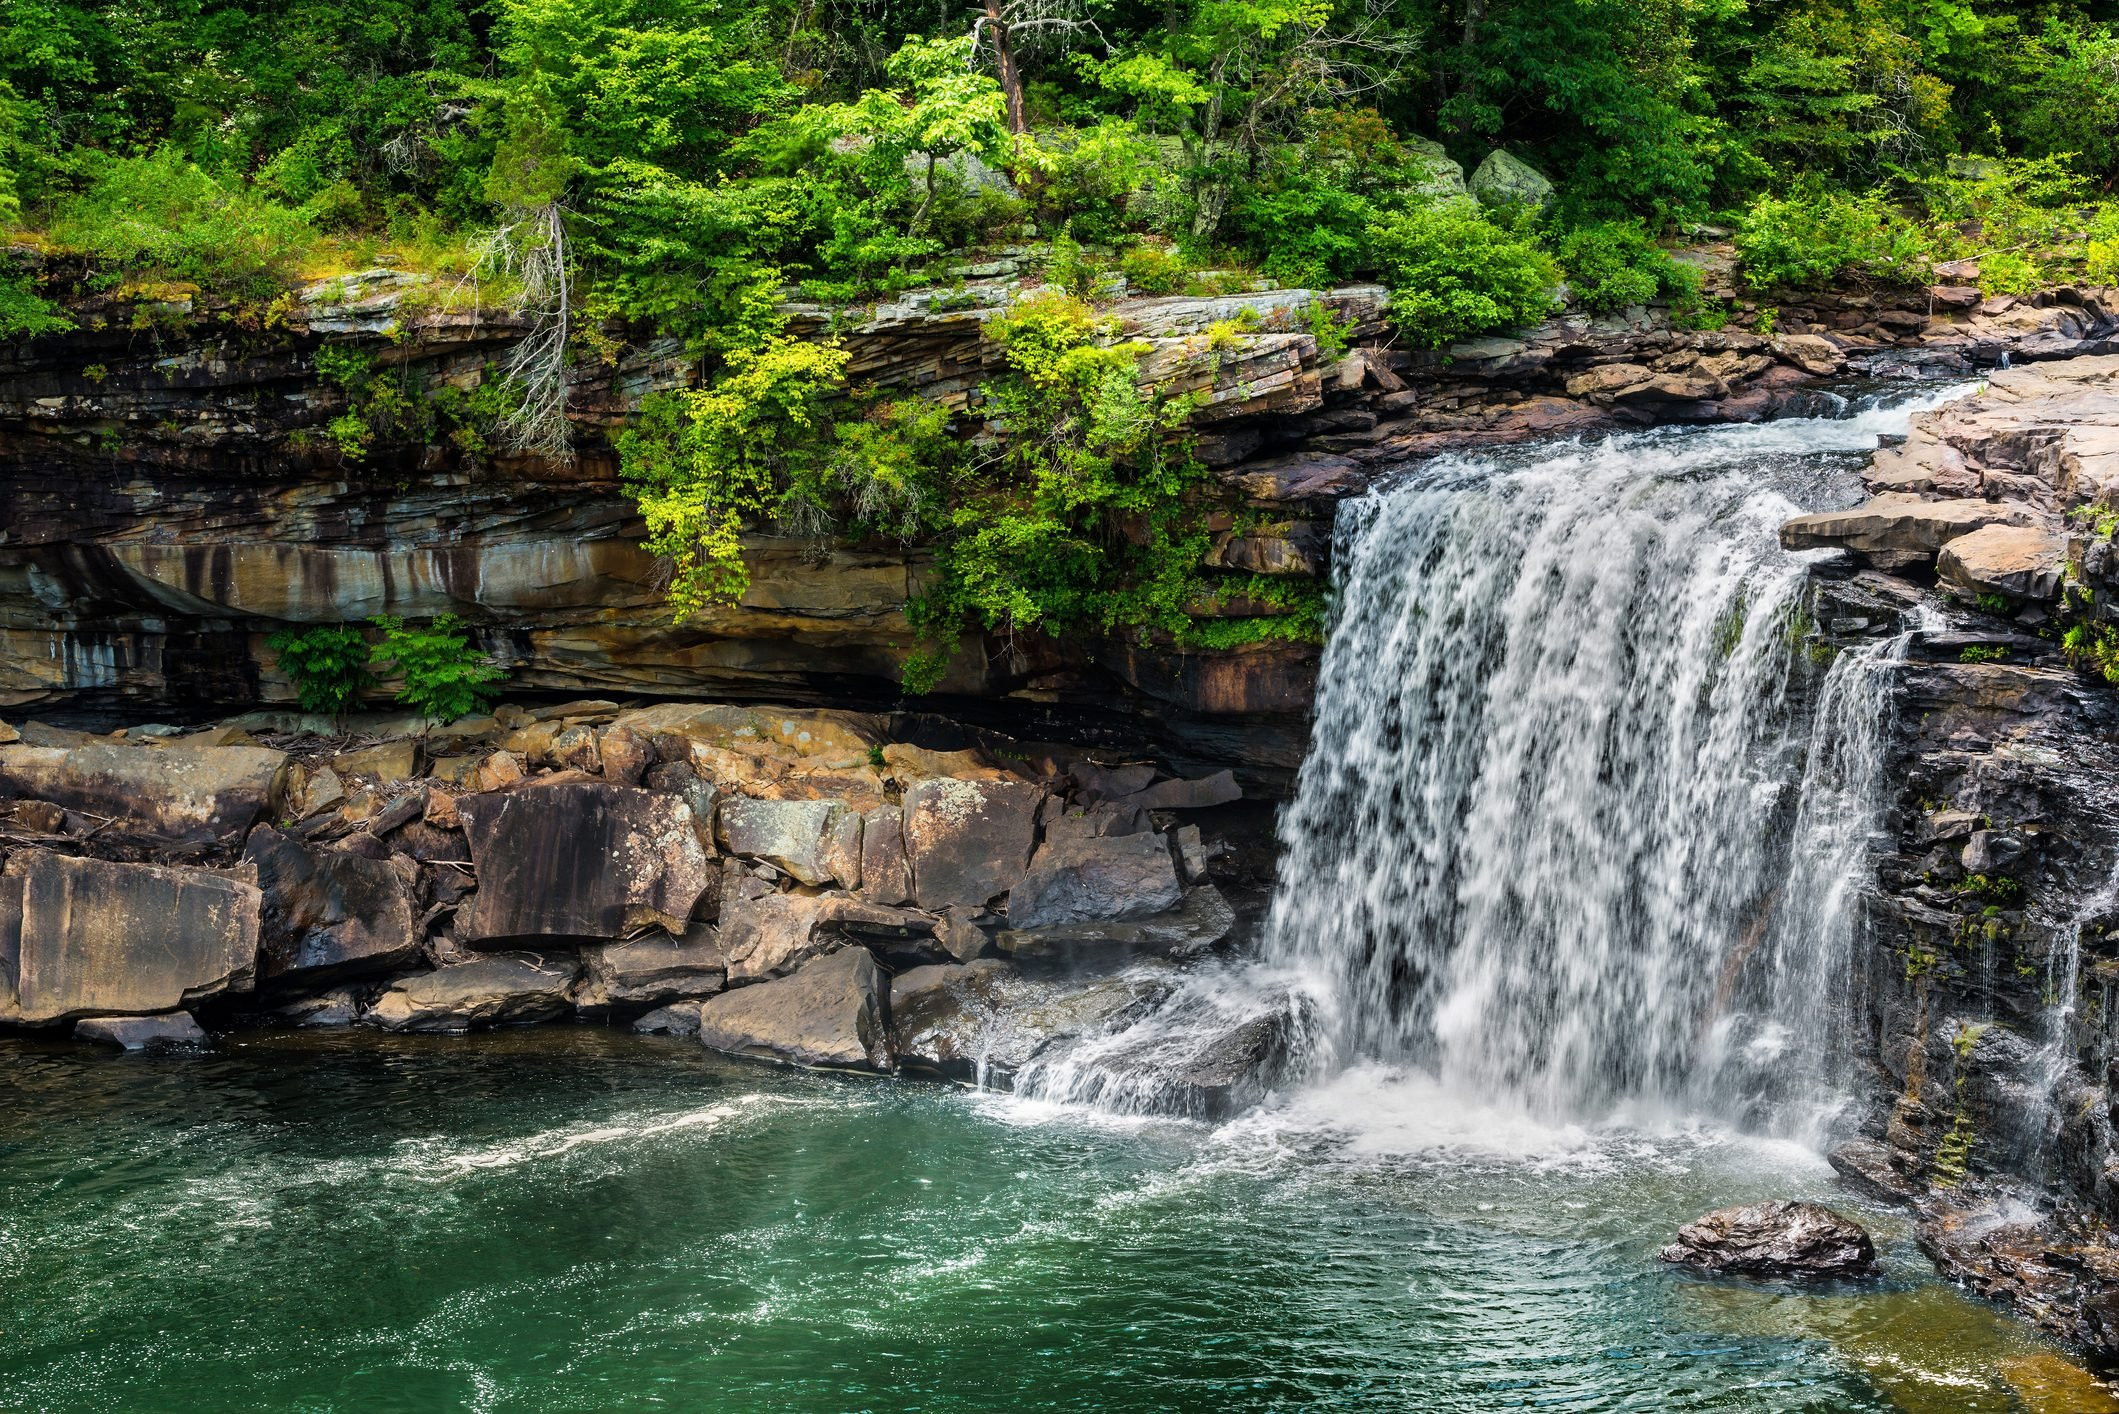 Waterfall at Little River Canyon National Preserve in northern A